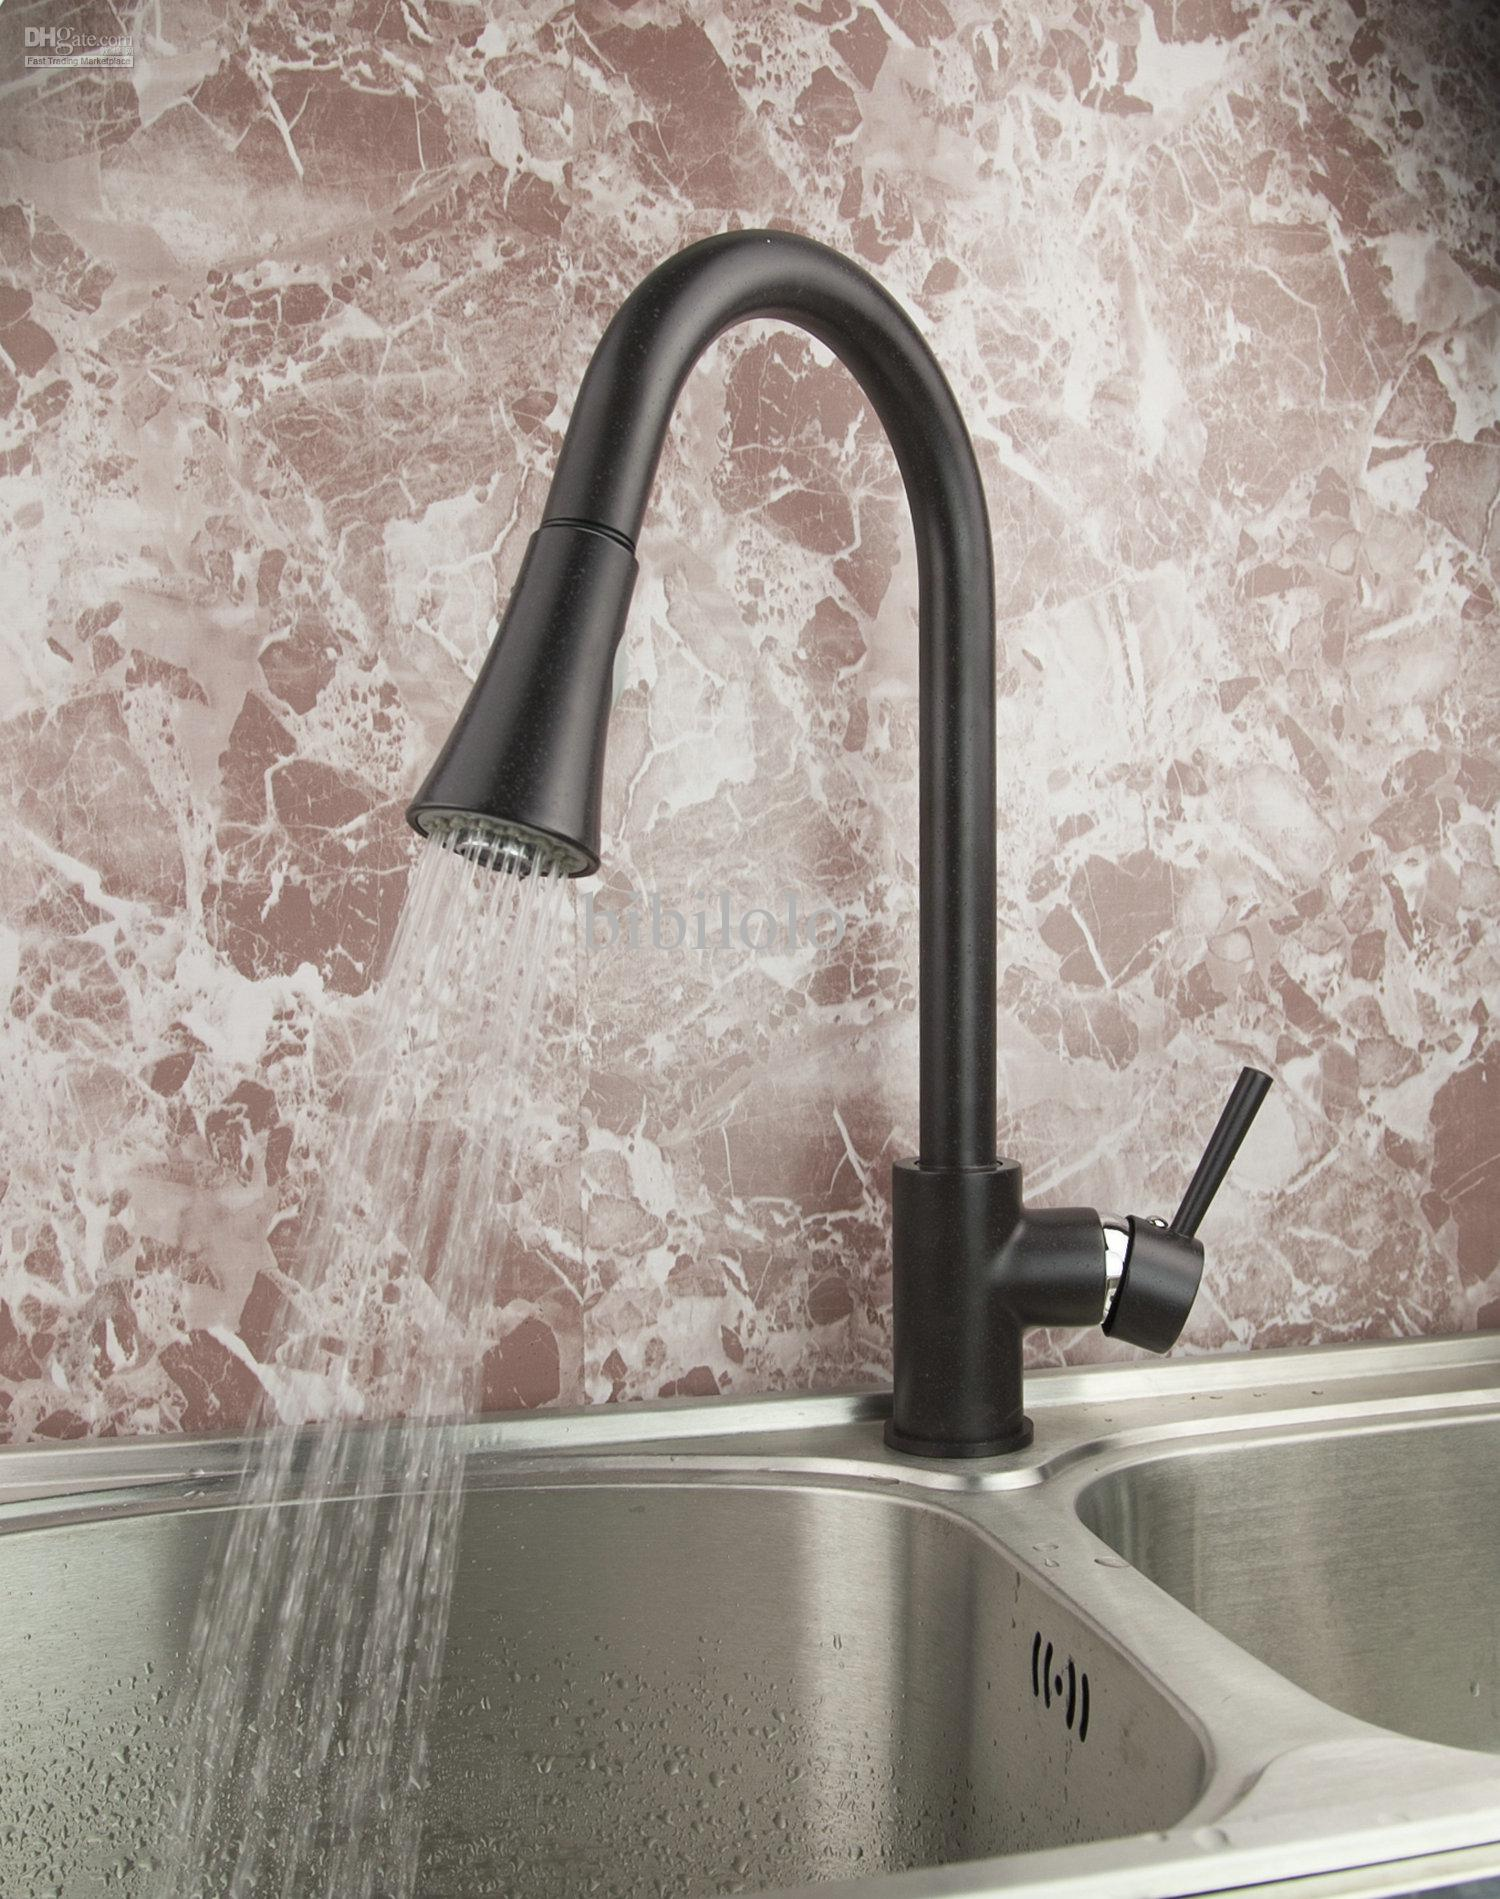 2021 Oil Rubbed Bronze Kitchen Sink Single Handle Mixer Tap Faucet Dh 7250 From Bibilolo 69 1 Dhgate Com